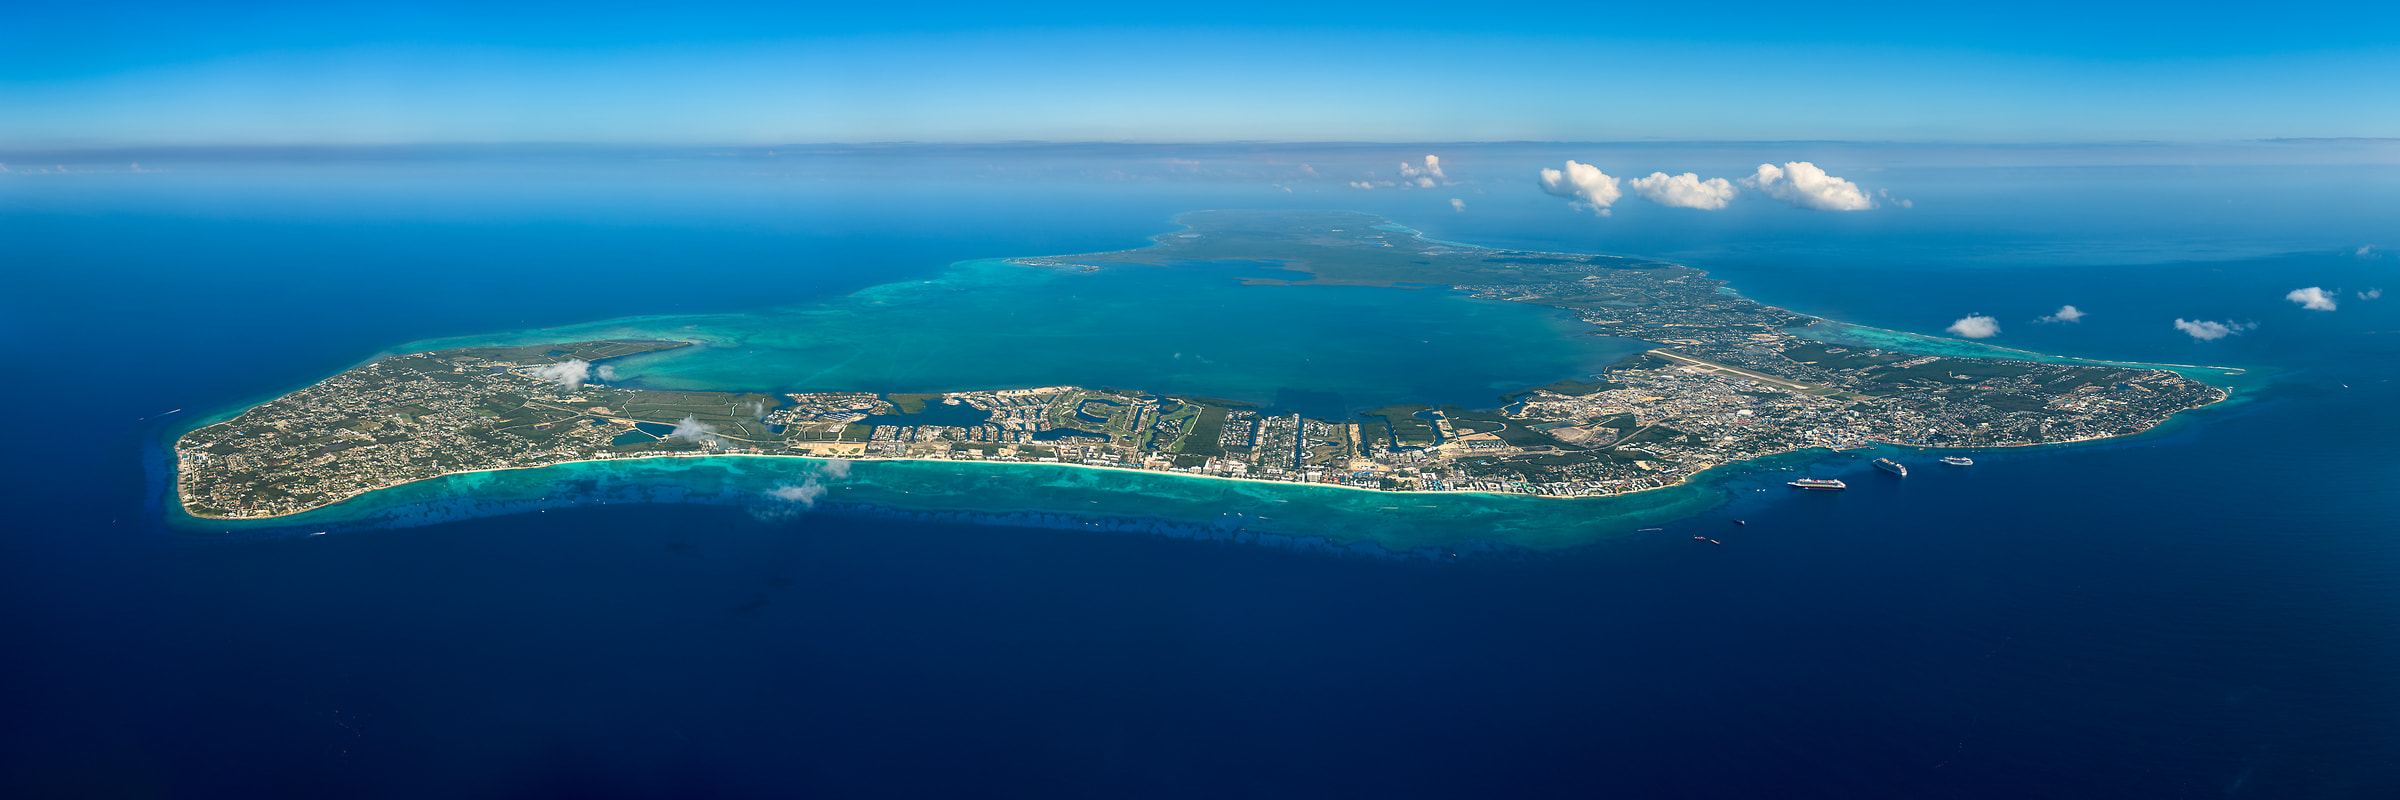 428 megapixels! A very high resolution aerial photo of Seven Mile Beach on Grand Cayman island; VAST photo created by Aaron Priest in the Cayman Islands